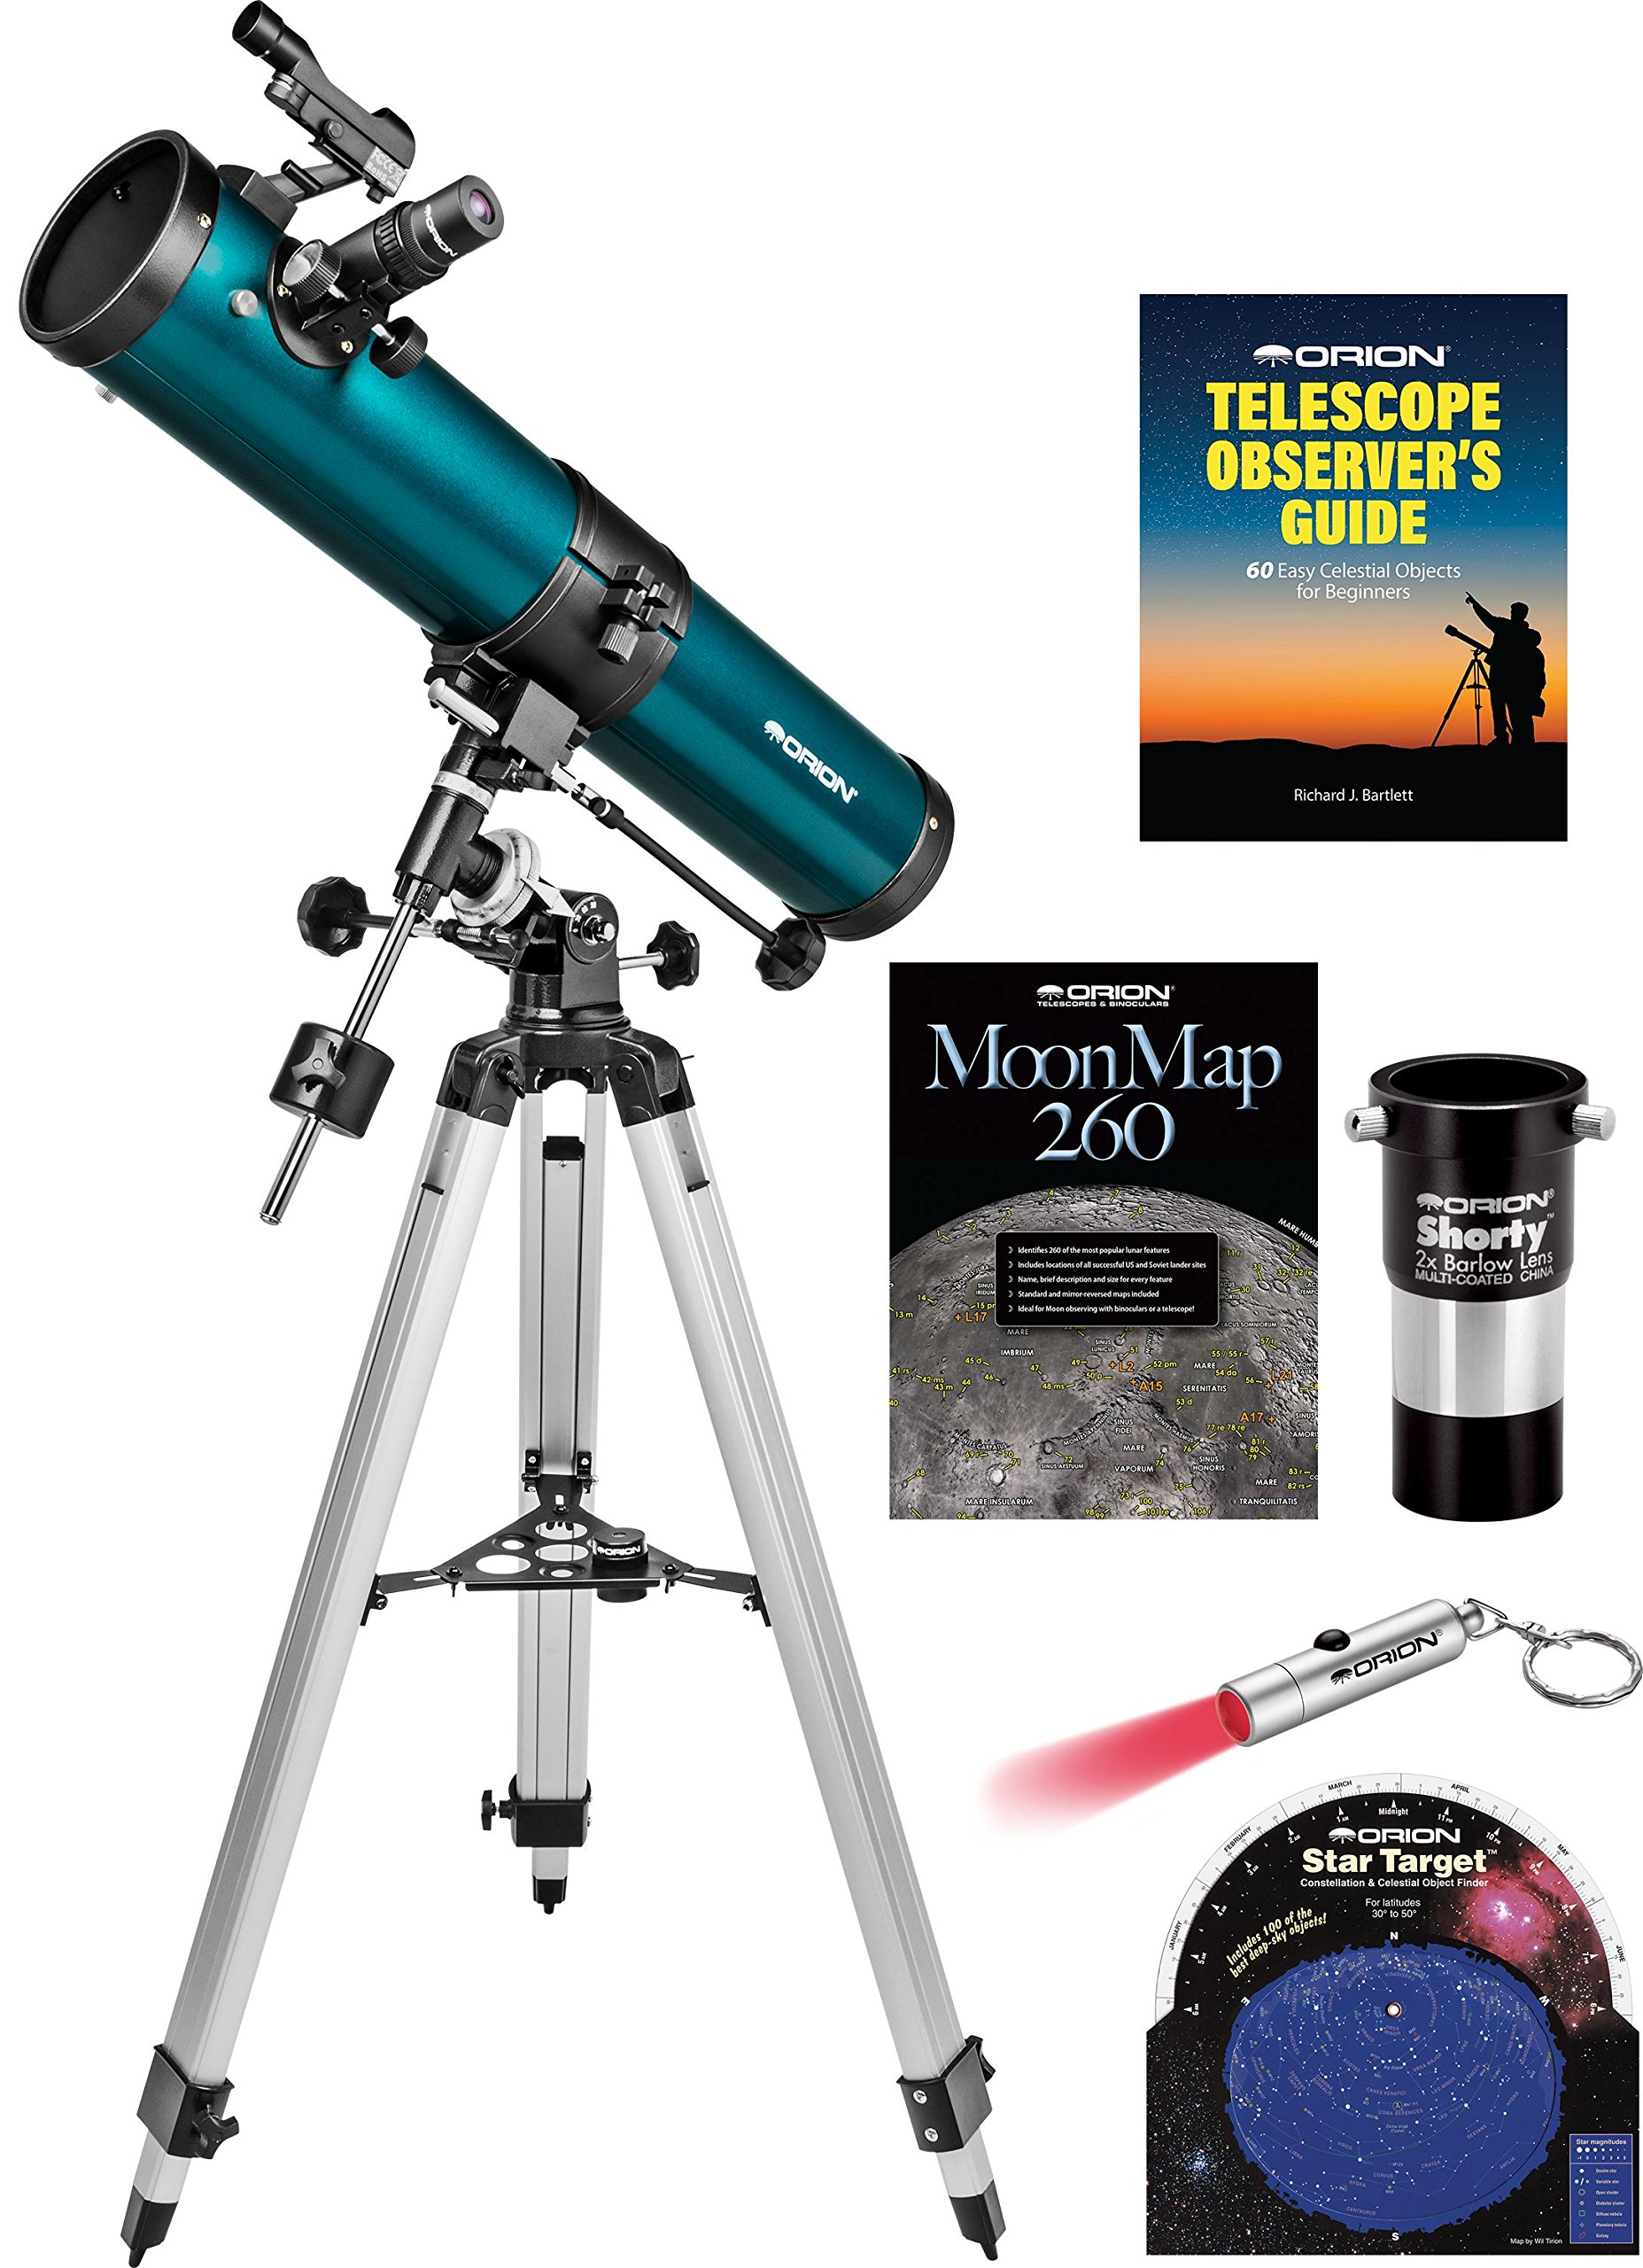 Orion SpaceProbe II 76mm Equatorial Reflector Telescope Kit by Orion